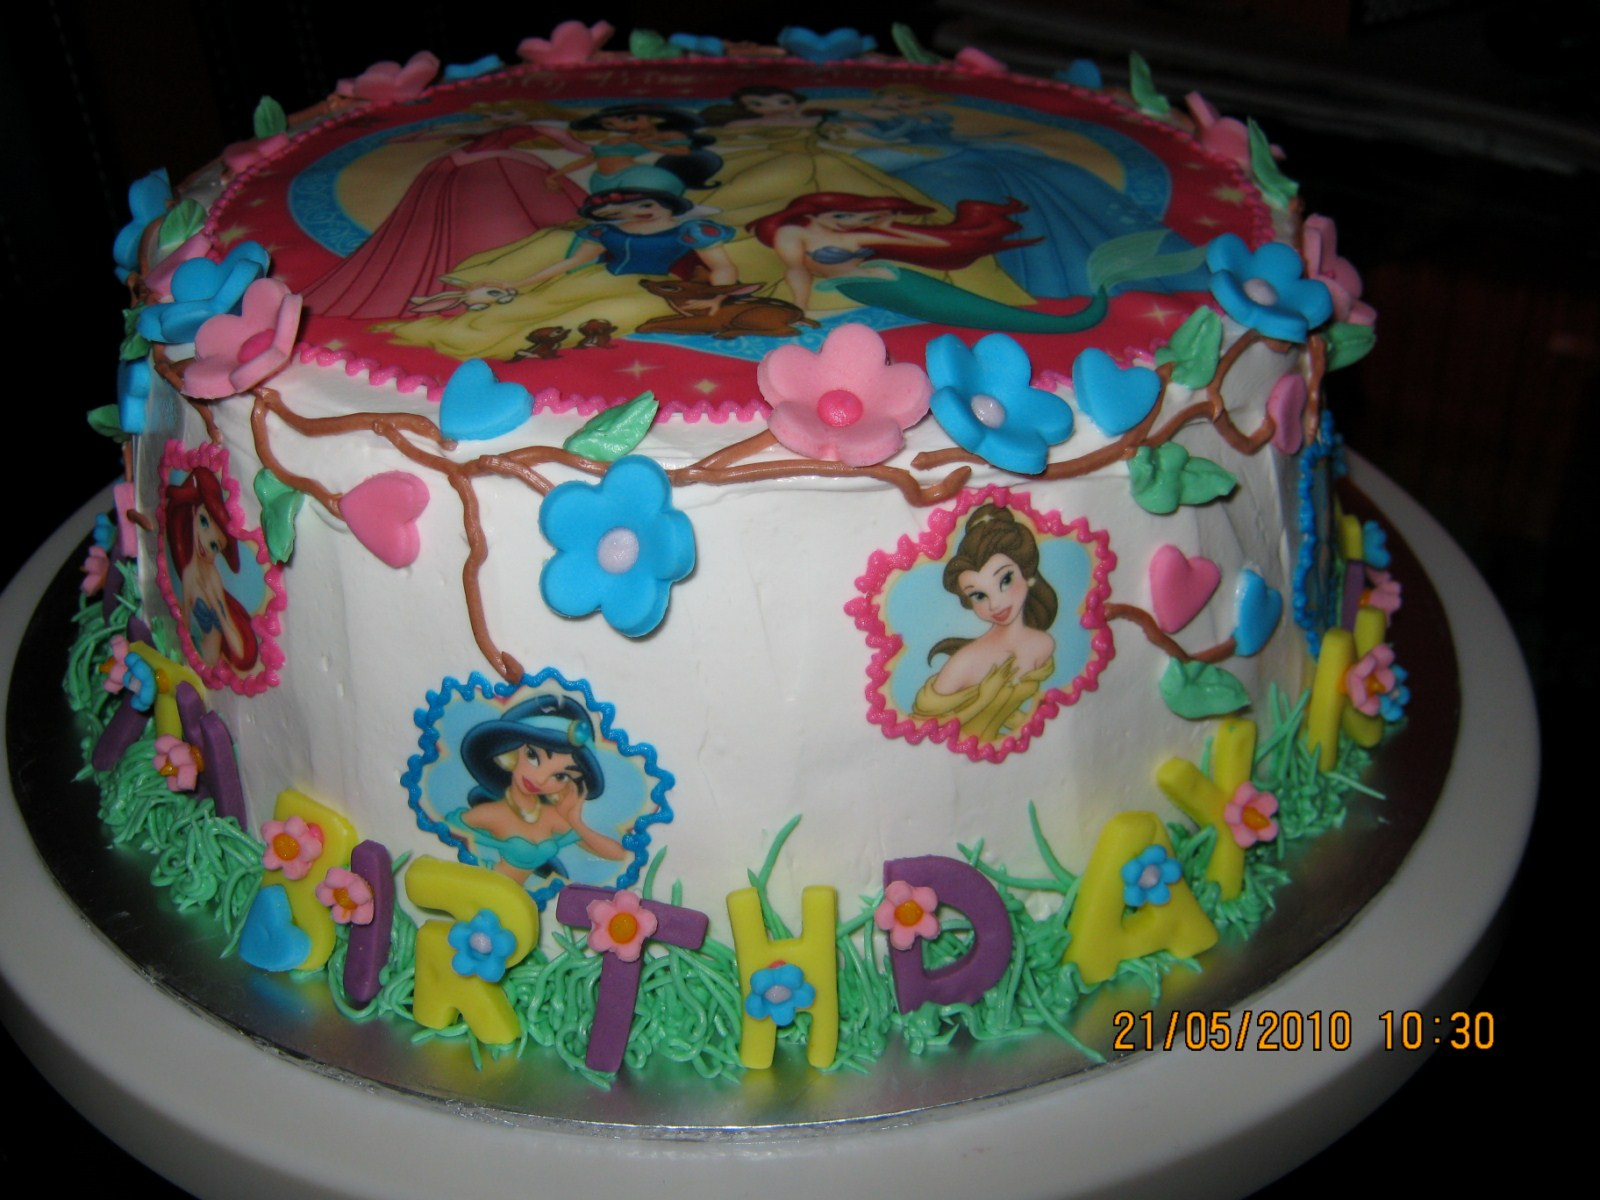 Edible Cake Images Nj : Sweet Bake: Birthday Cake - Princess Edible Image